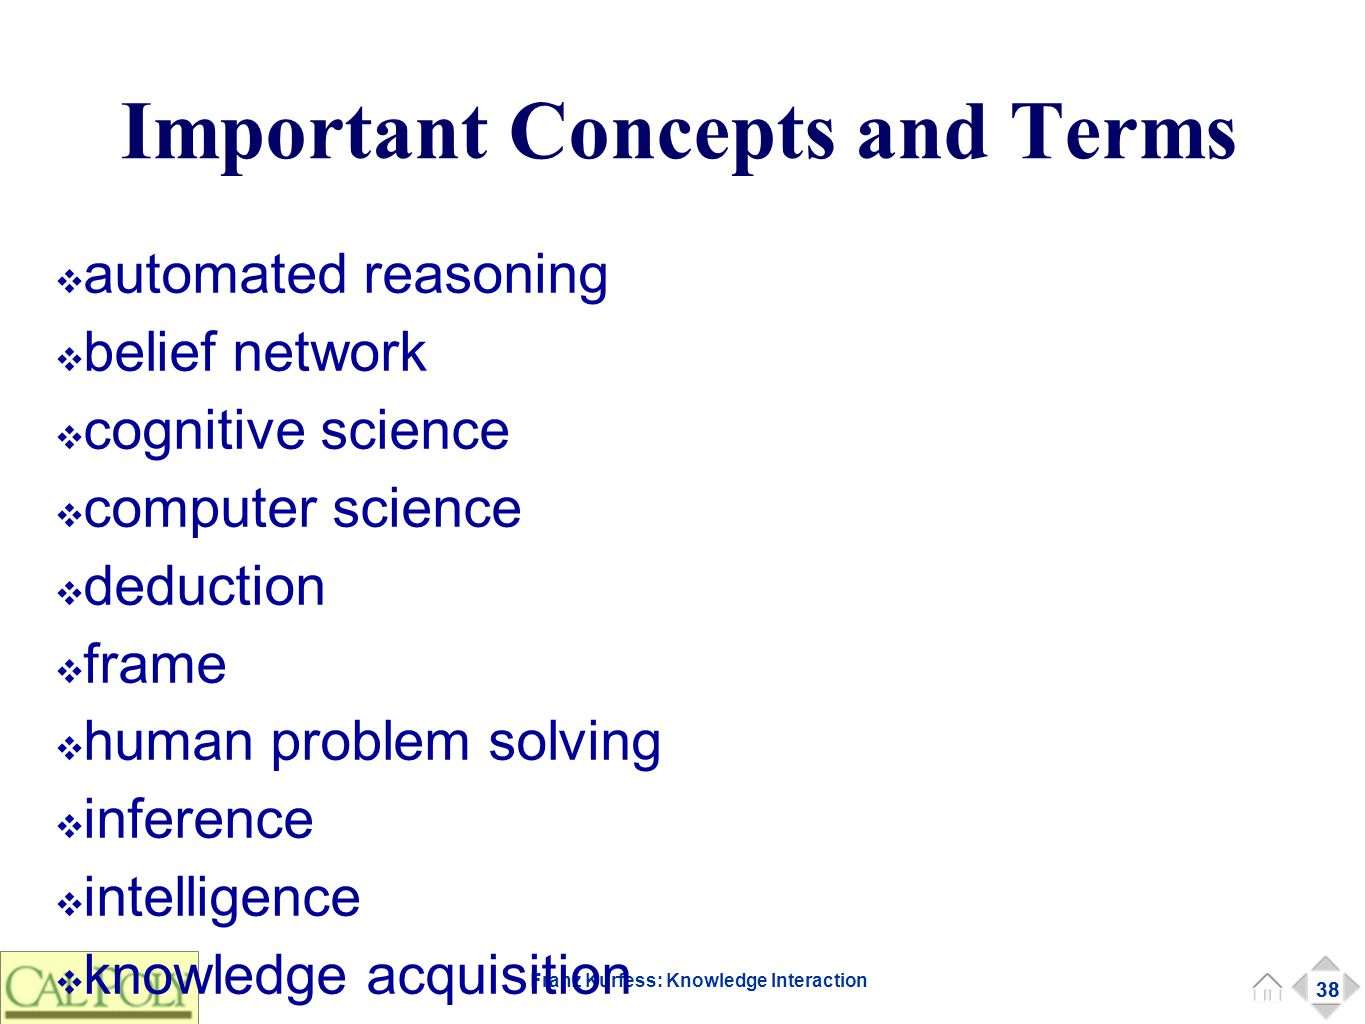 38 Franz Kurfess: Knowledge Interaction Important Concepts and Terms 38 ❖ automated reasoning ❖ belief network ❖ cognitive science ❖ computer science